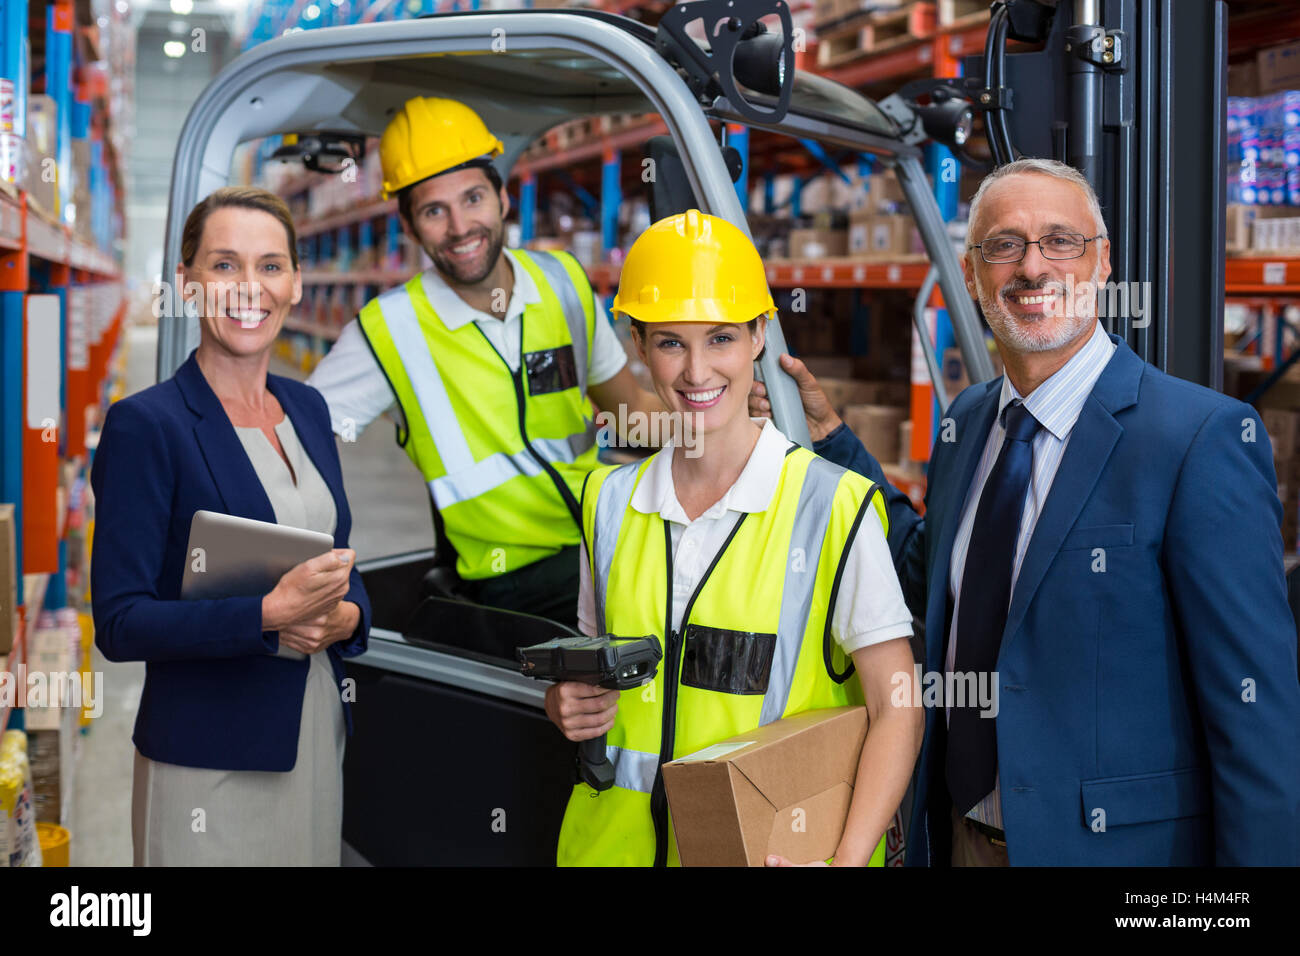 Warehouse manager and client standing with co-workers - Stock Image